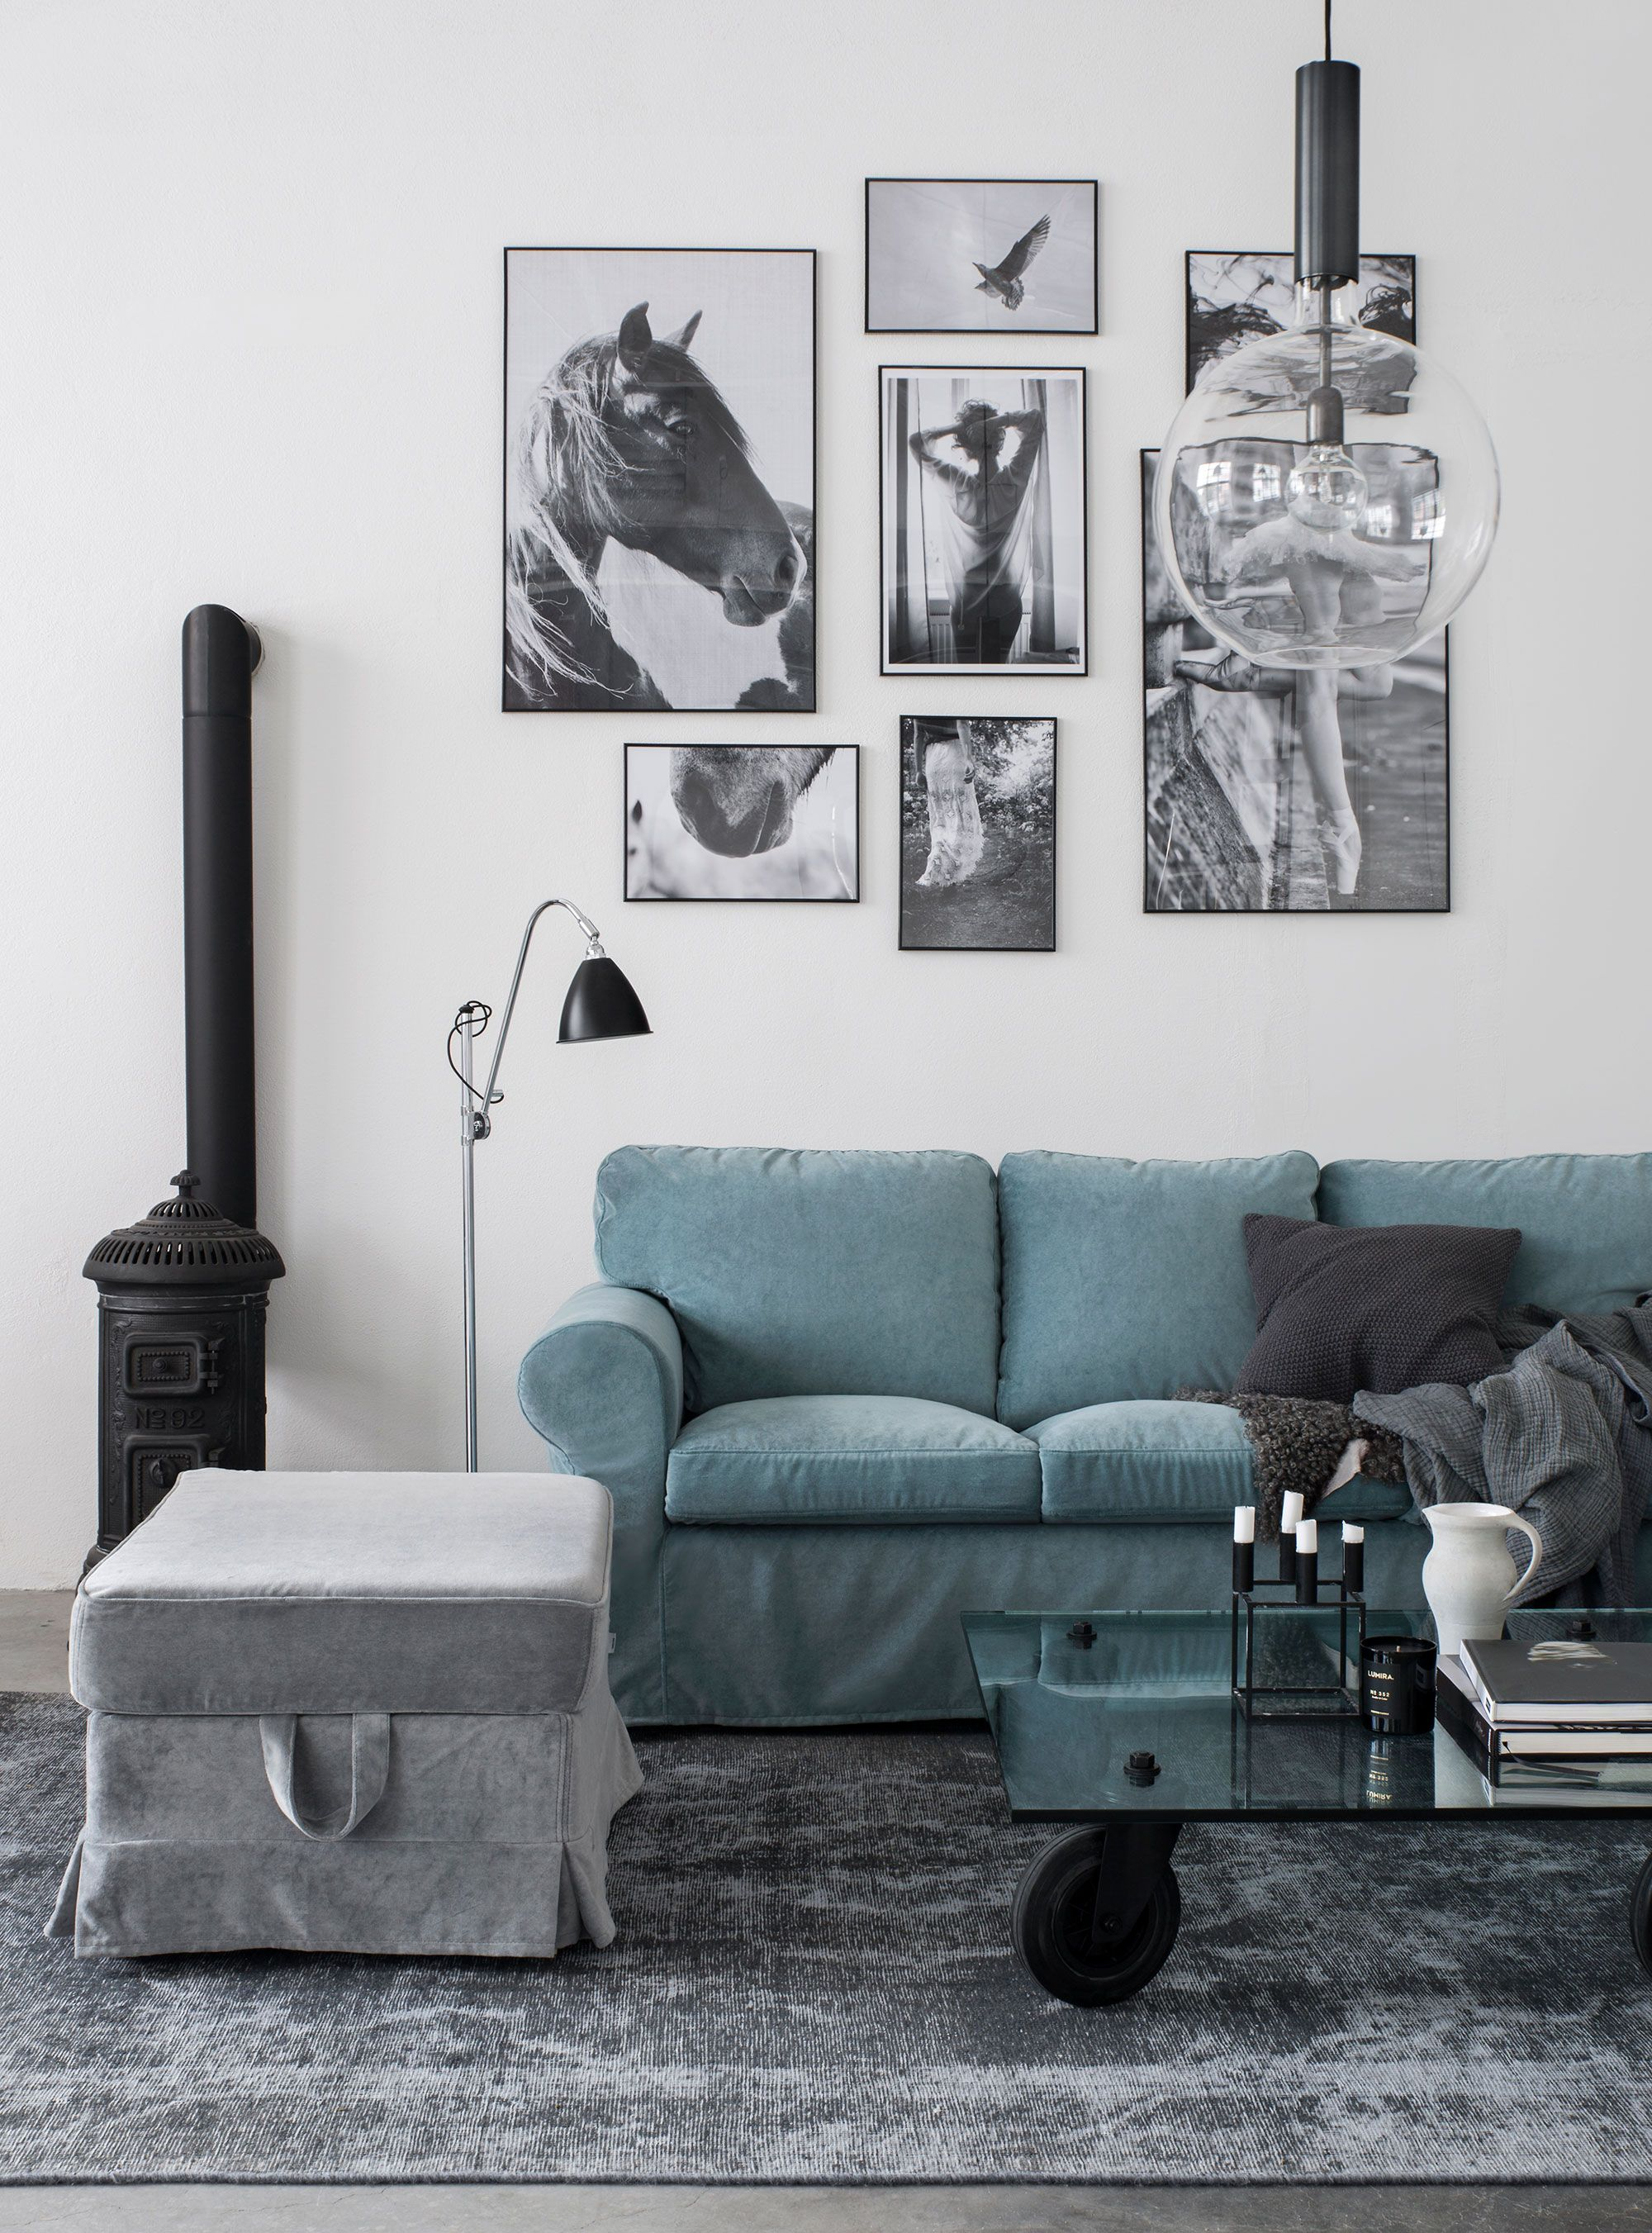 Scandinavian Inspired Living Room With Industrial Style Images Blue Velvet Sofa Ikea Ektorp Sofa With A Bemz Cover I Ikea Sofa Ektorp Sofa Ikea Ektorp Sofa